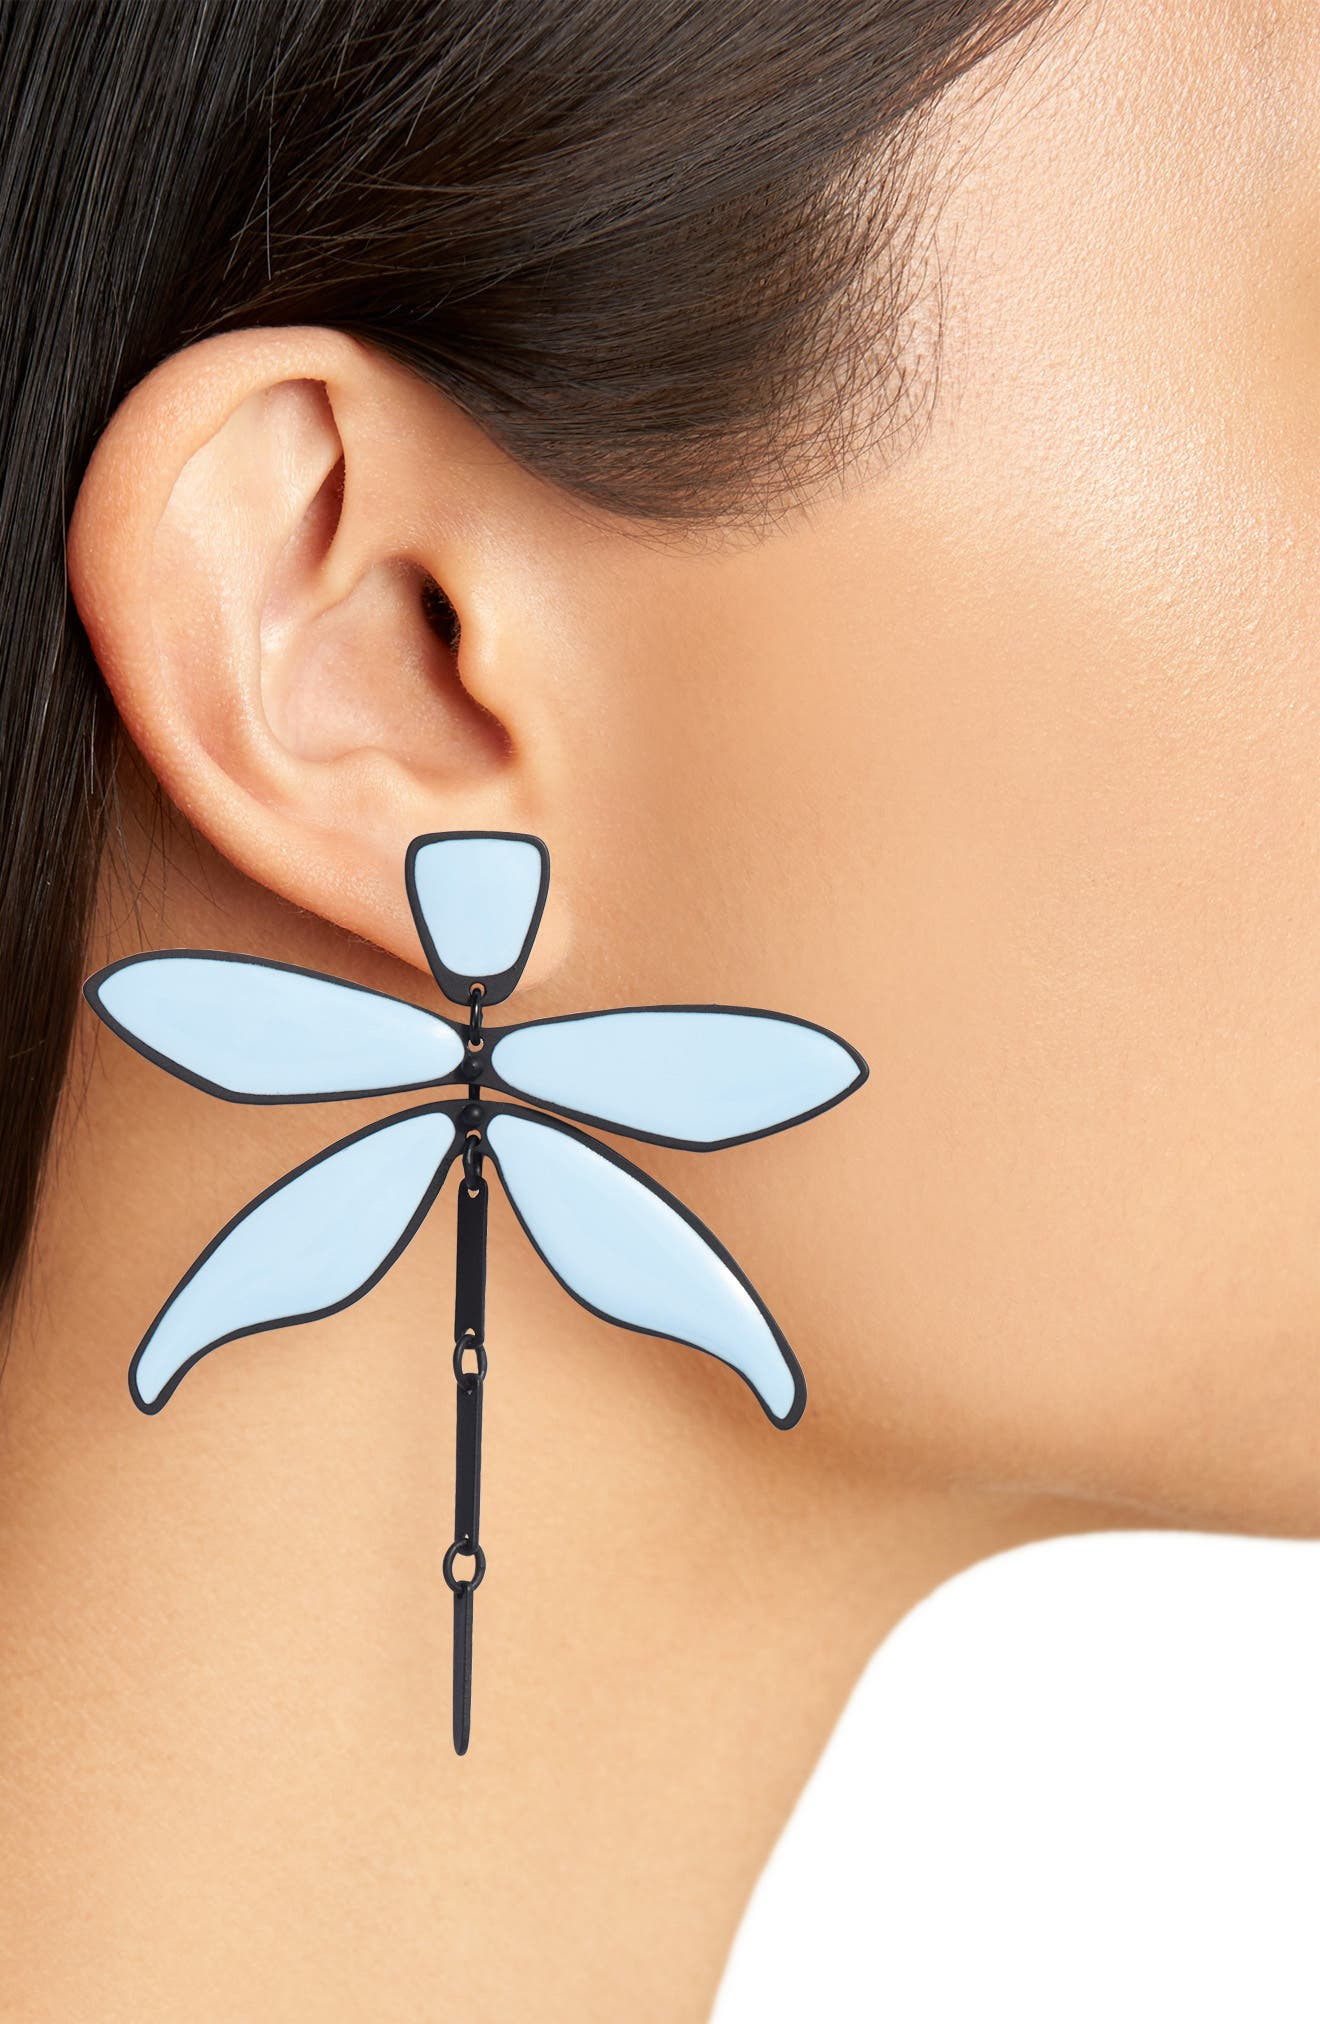 Articulated Dragonfly Earrings,                             Alternate thumbnail 5, color,